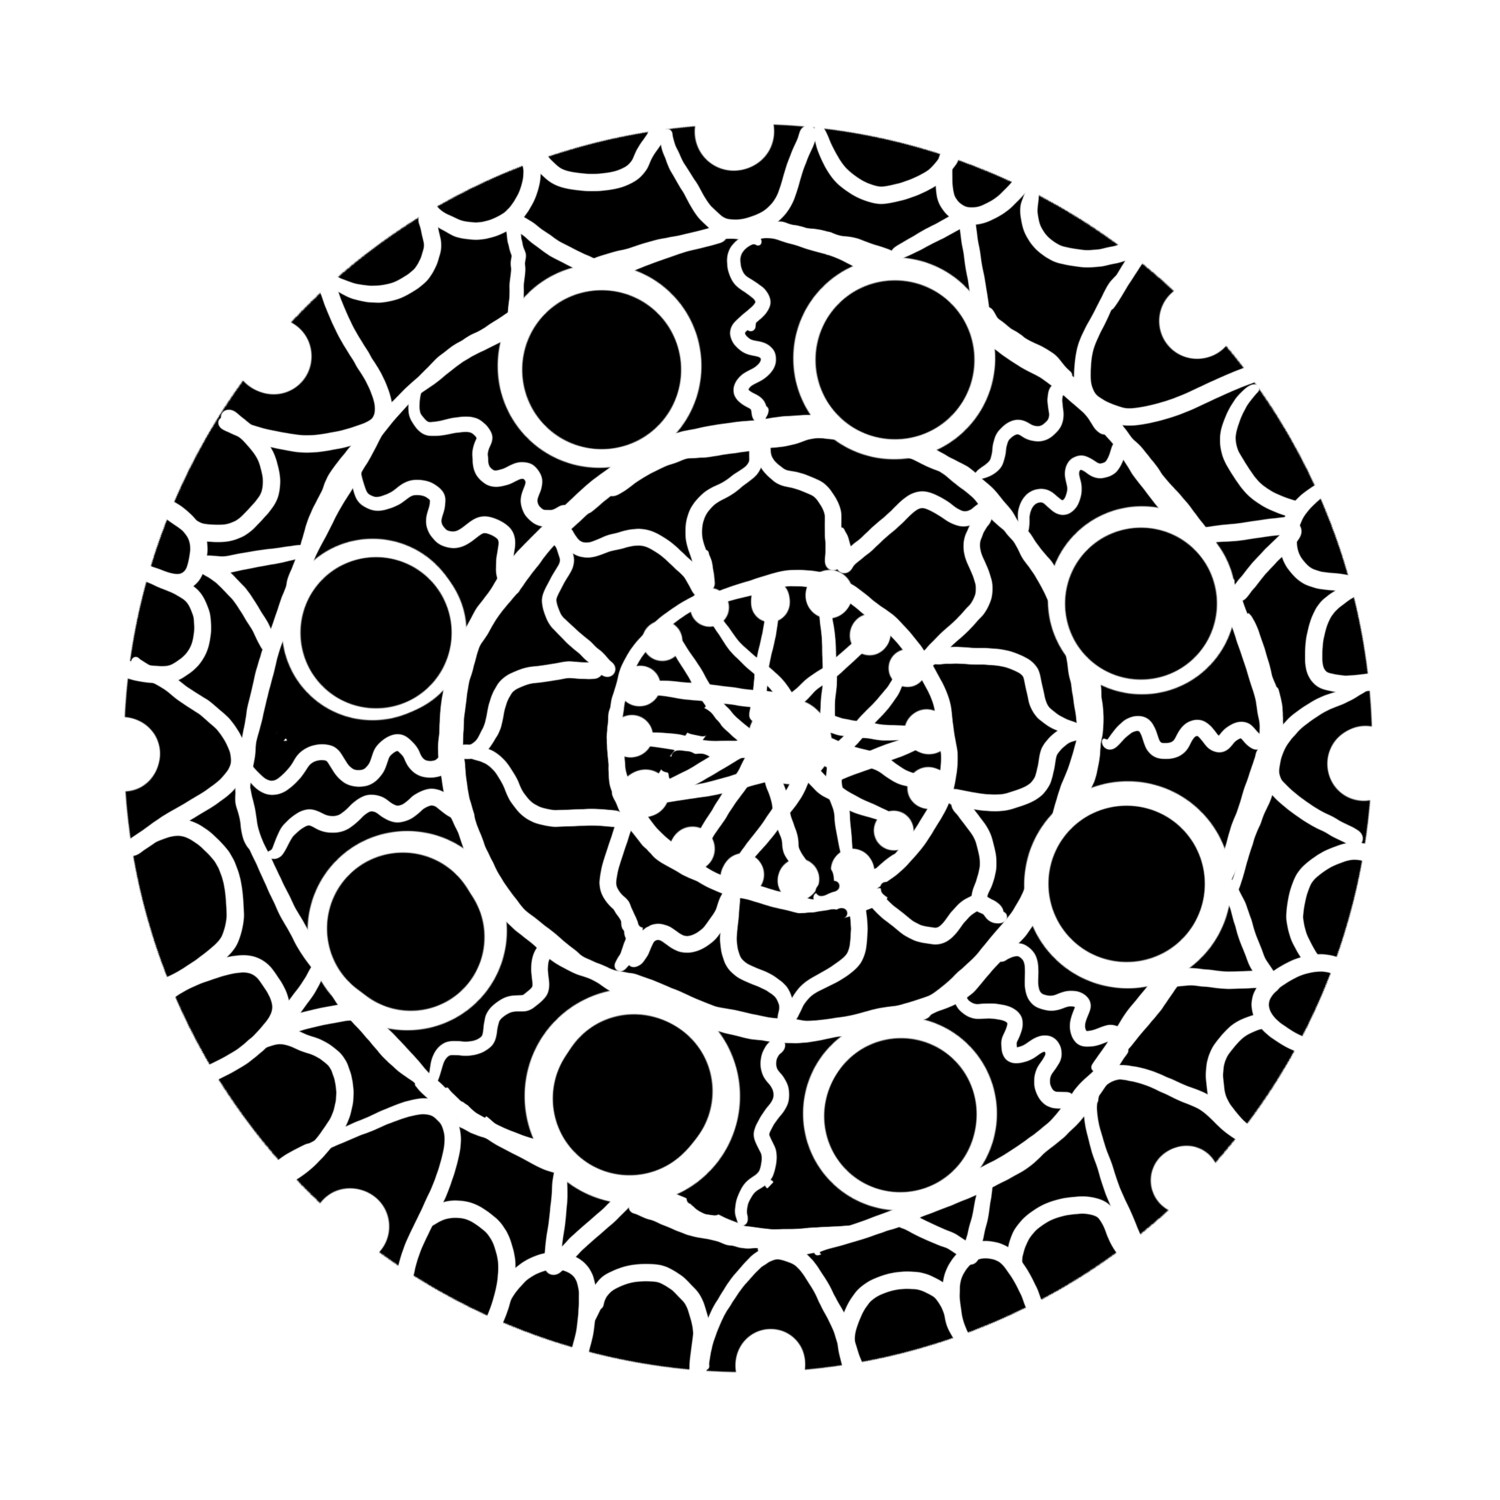 Hand Drawn Mandala stencil/mask 8x10